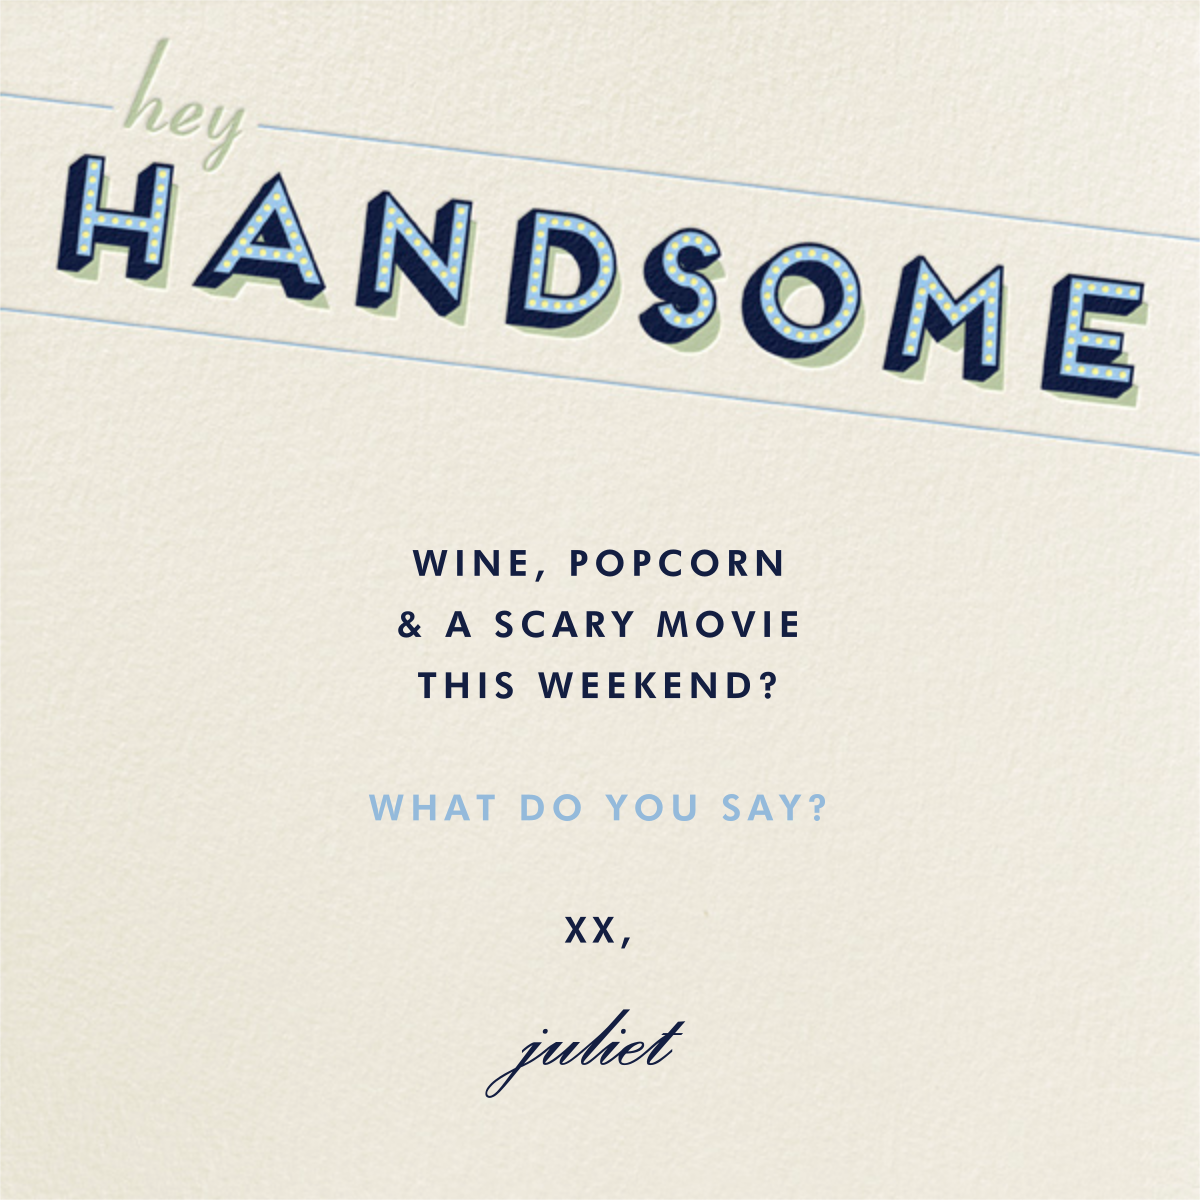 Hey Handsome - Paperless Post - Just because